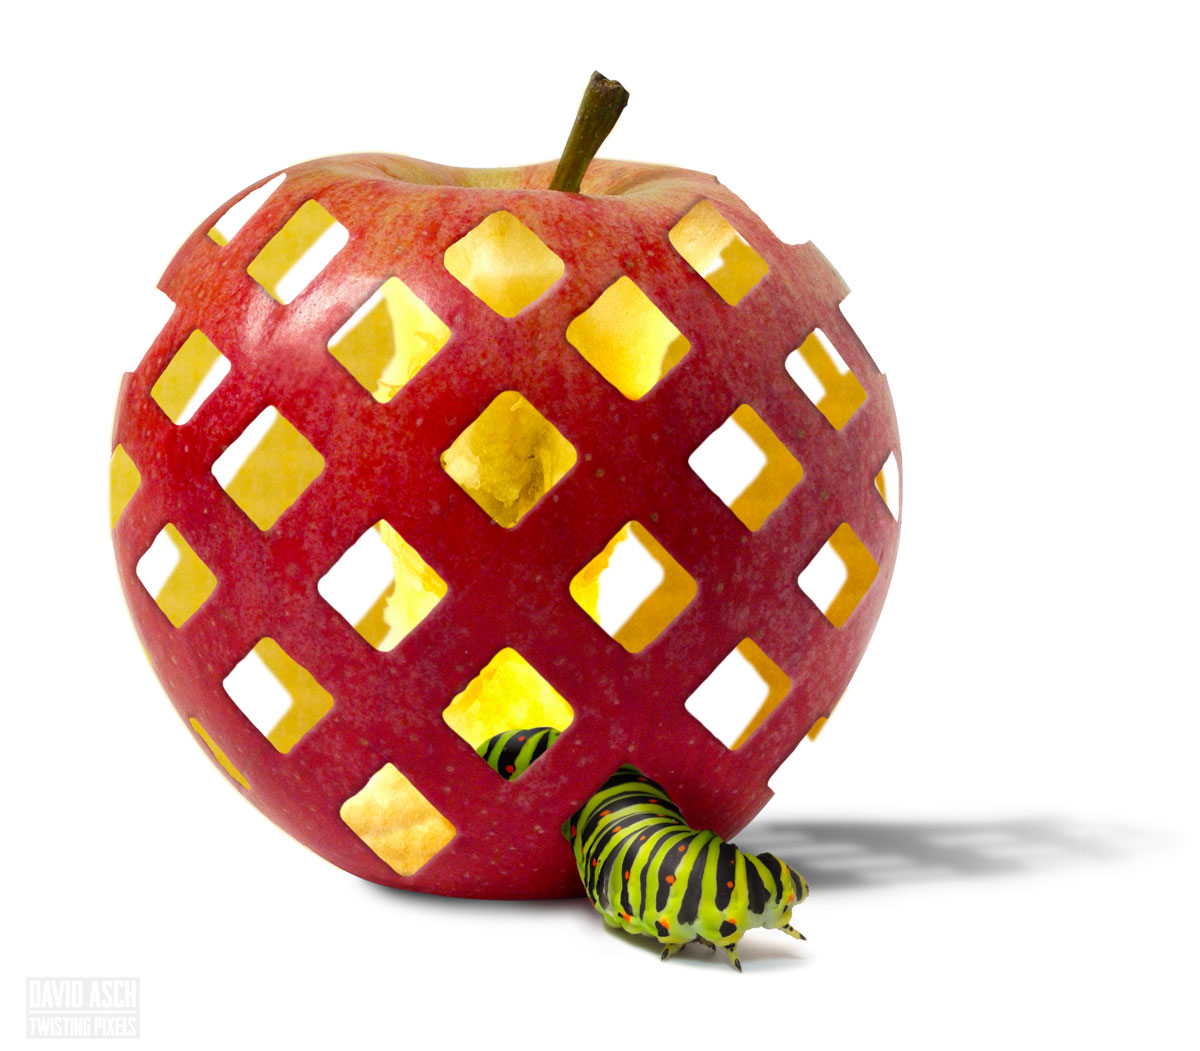 An image of a caterpillar emerging from an apple with a latticework skin. Created using a similar technique to this article.